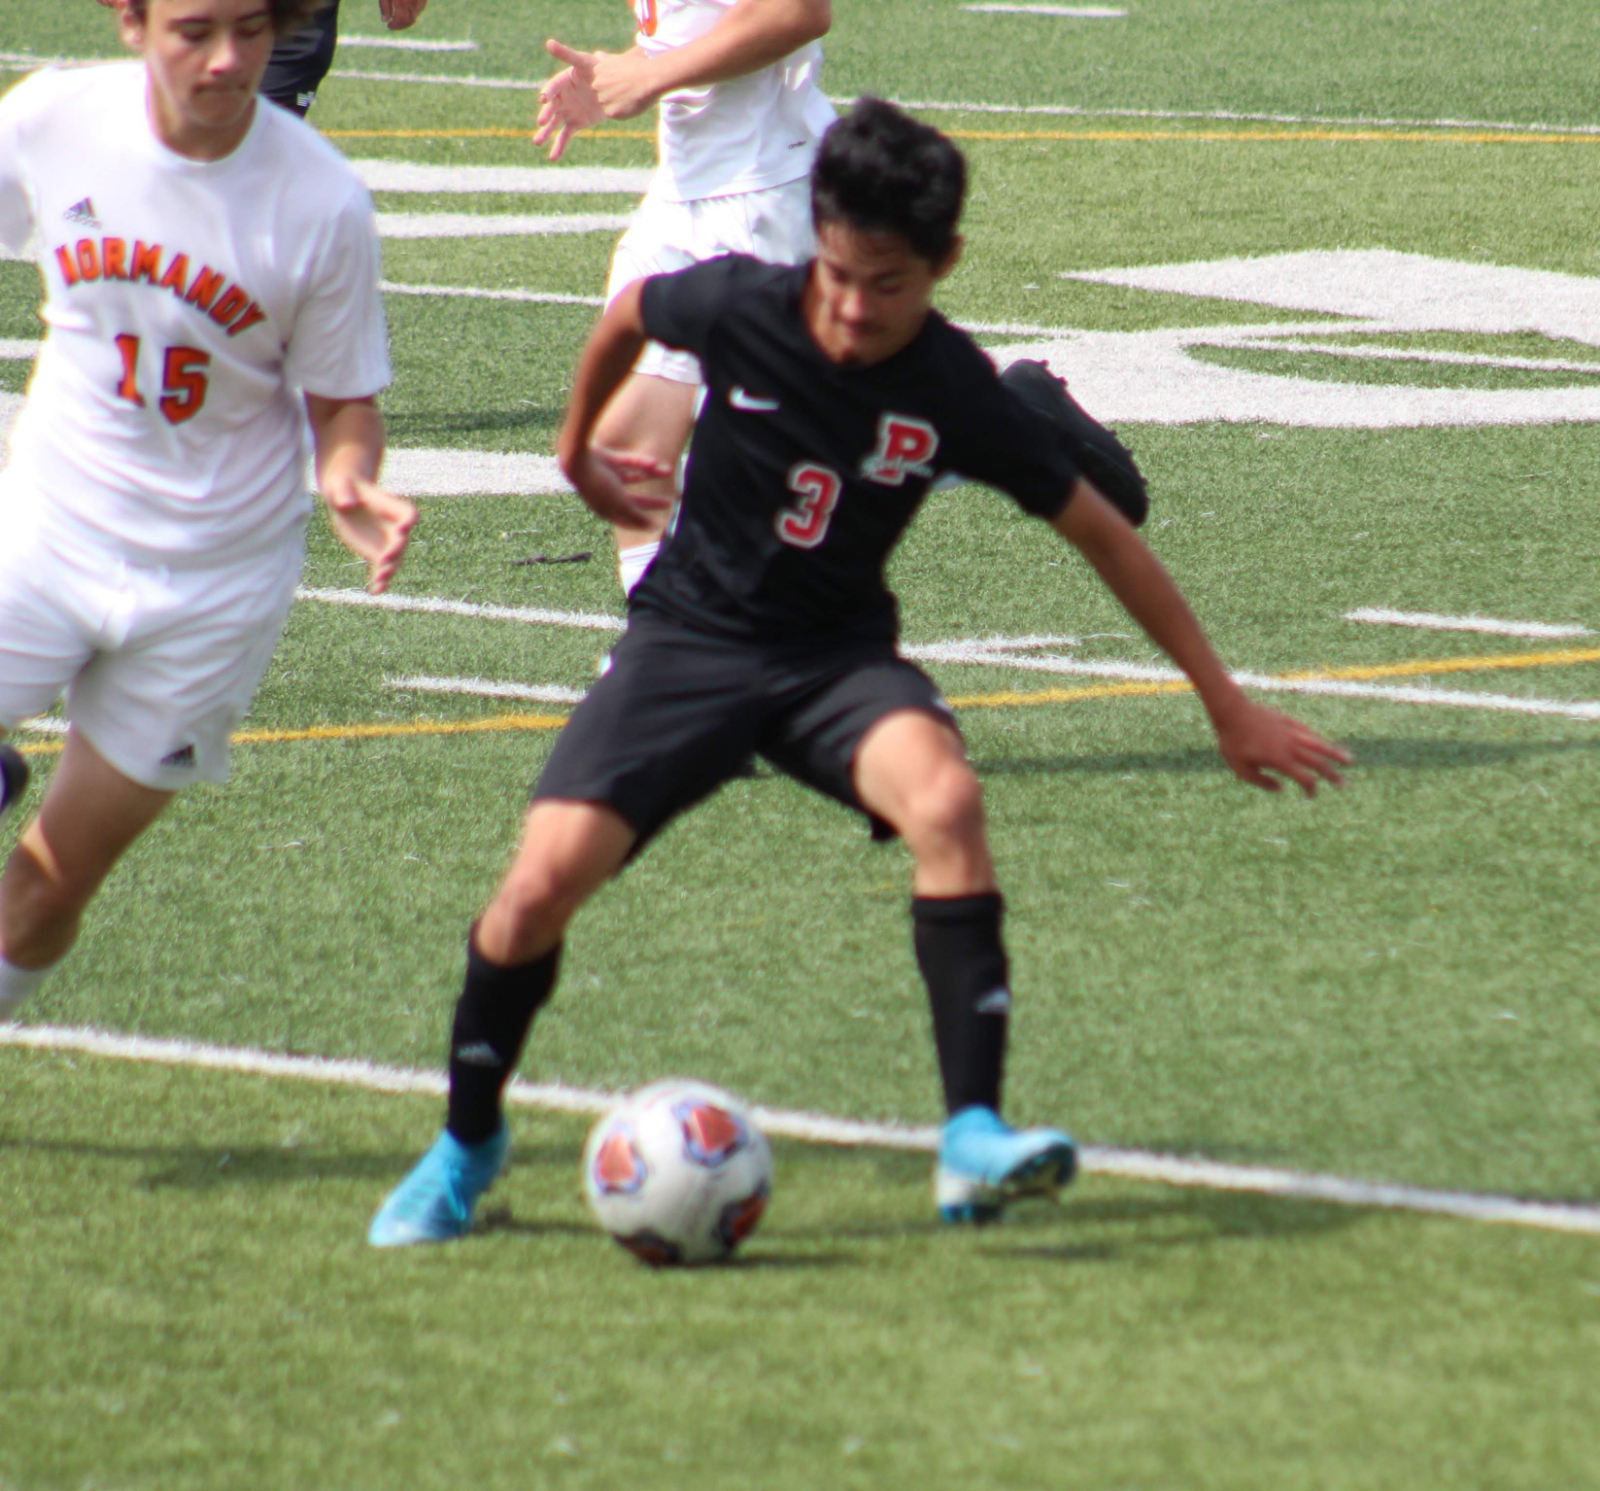 Action Pics from Redmen Boys Soccer vs Normandy